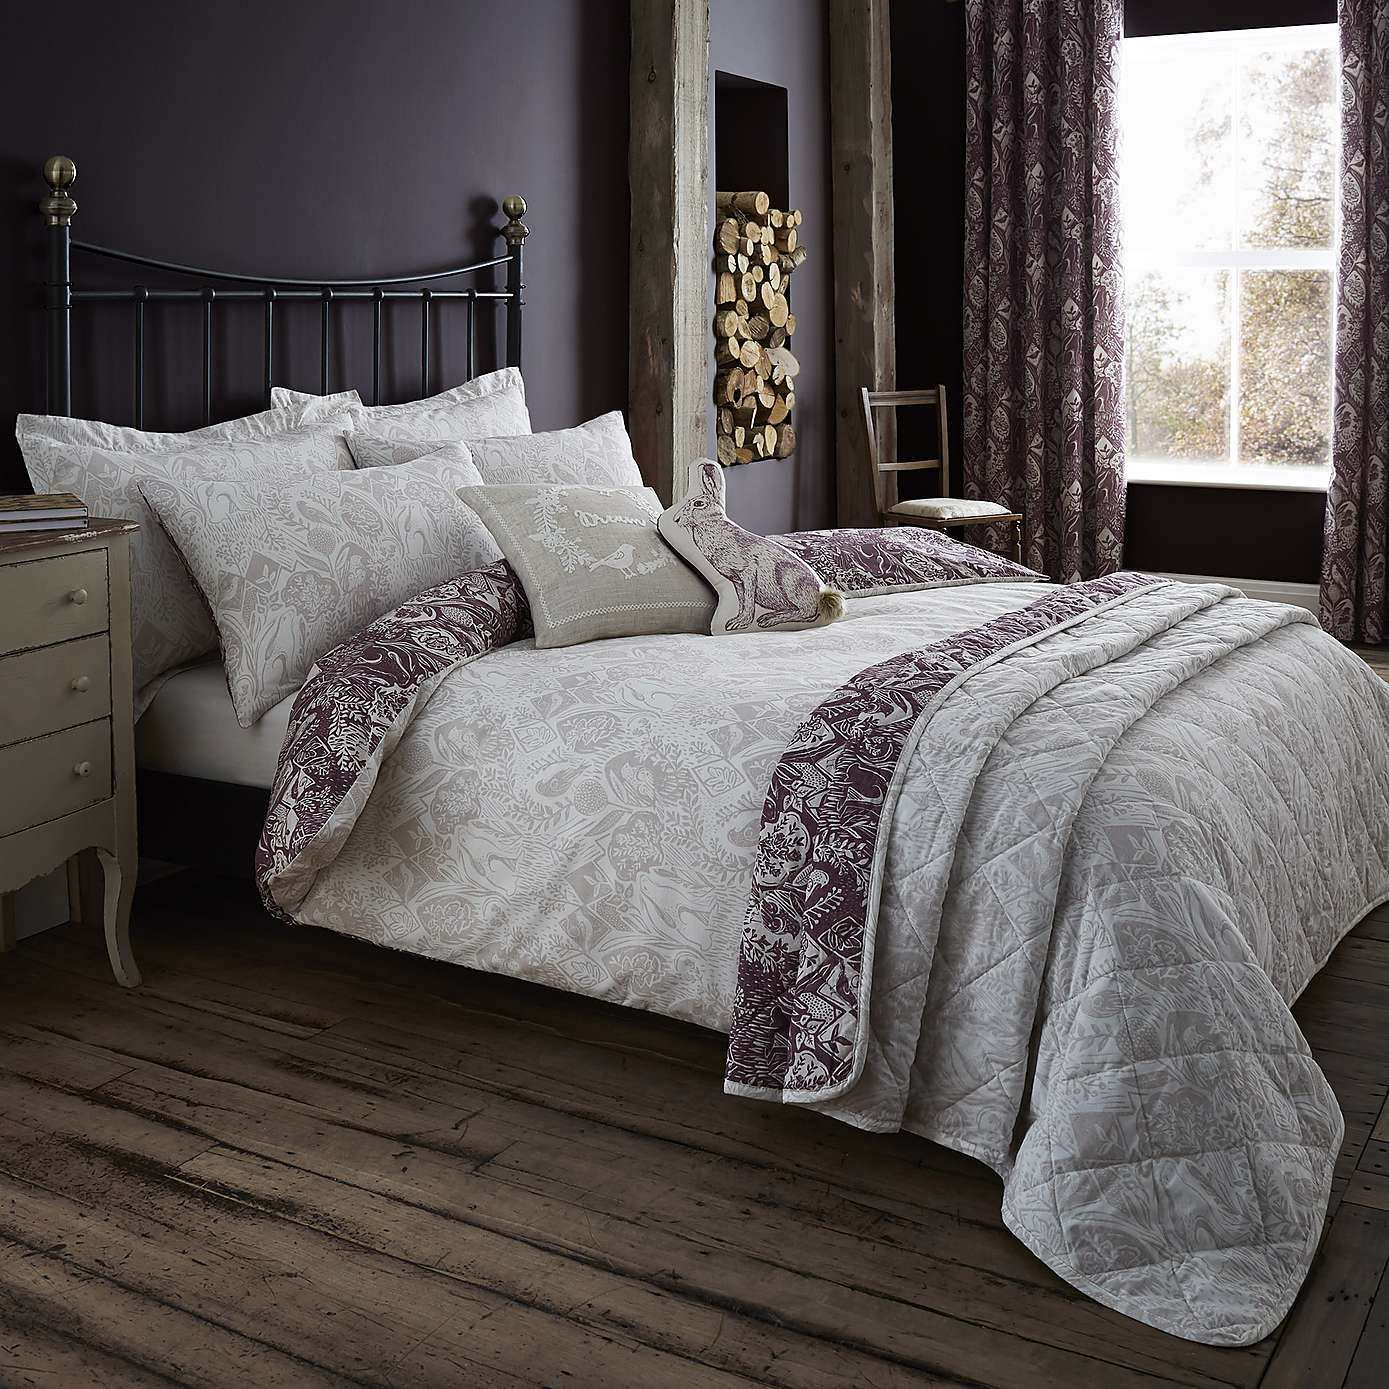 Willow Plum Reversible Duvet Cover And Pillowcase Set In